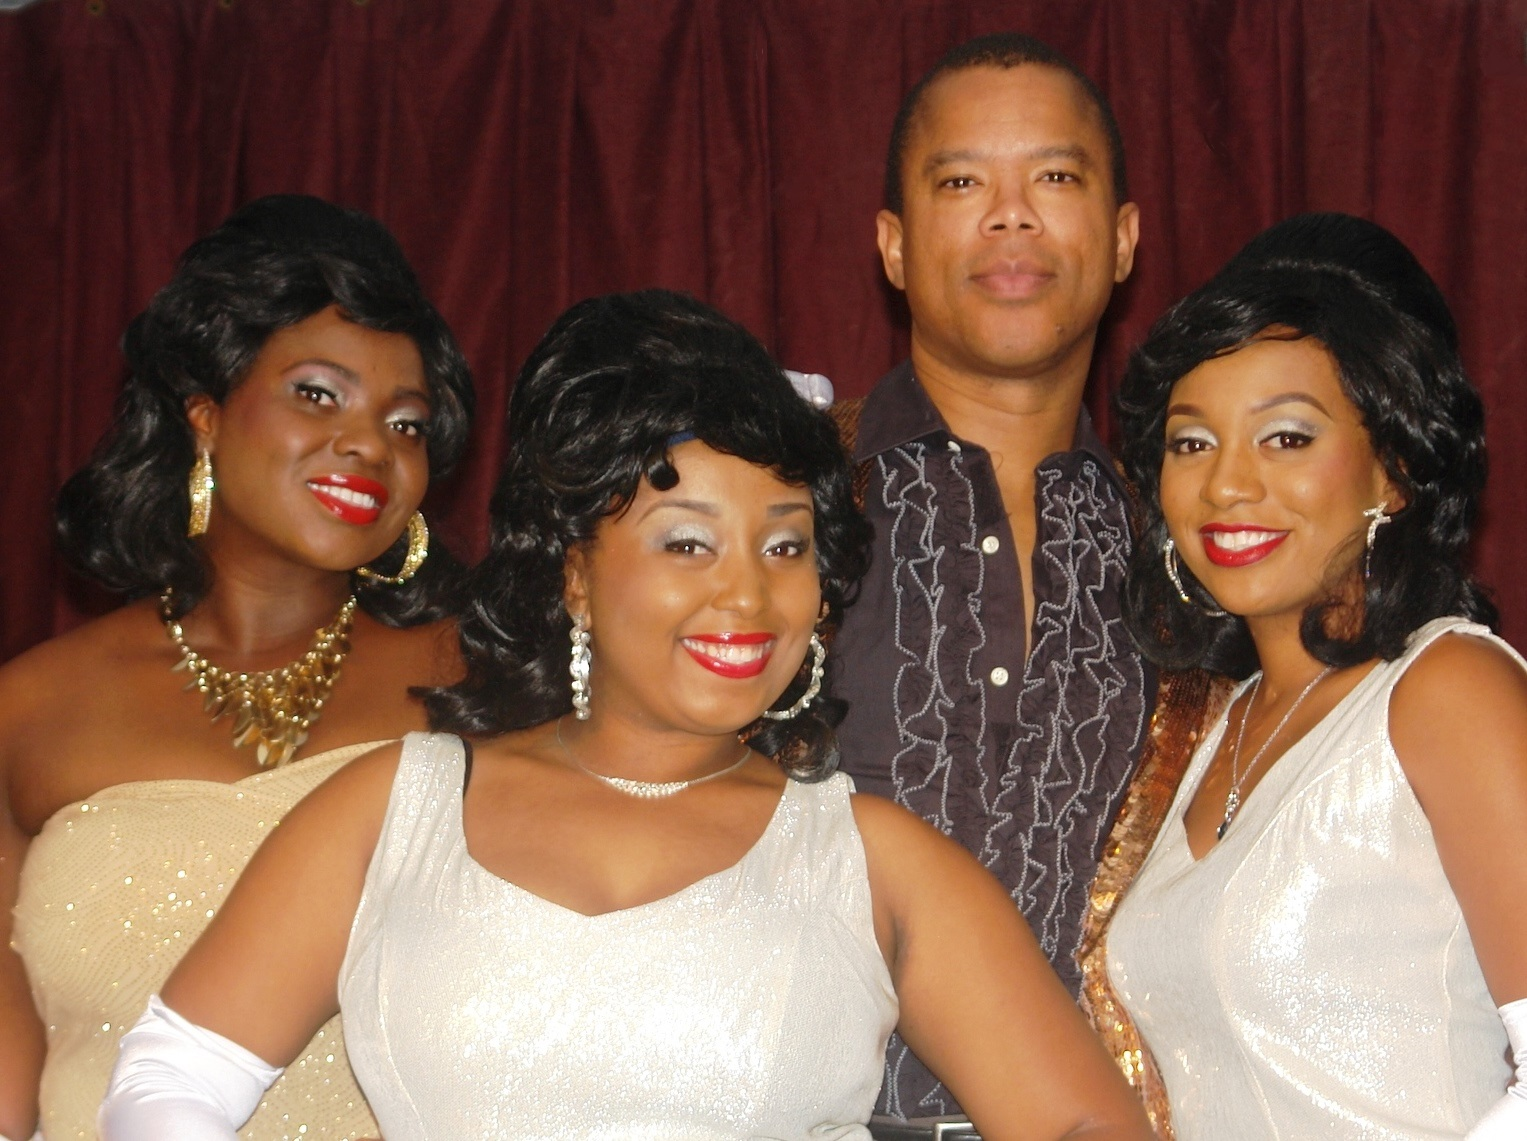 Part of the 'Dreamgirls' cast